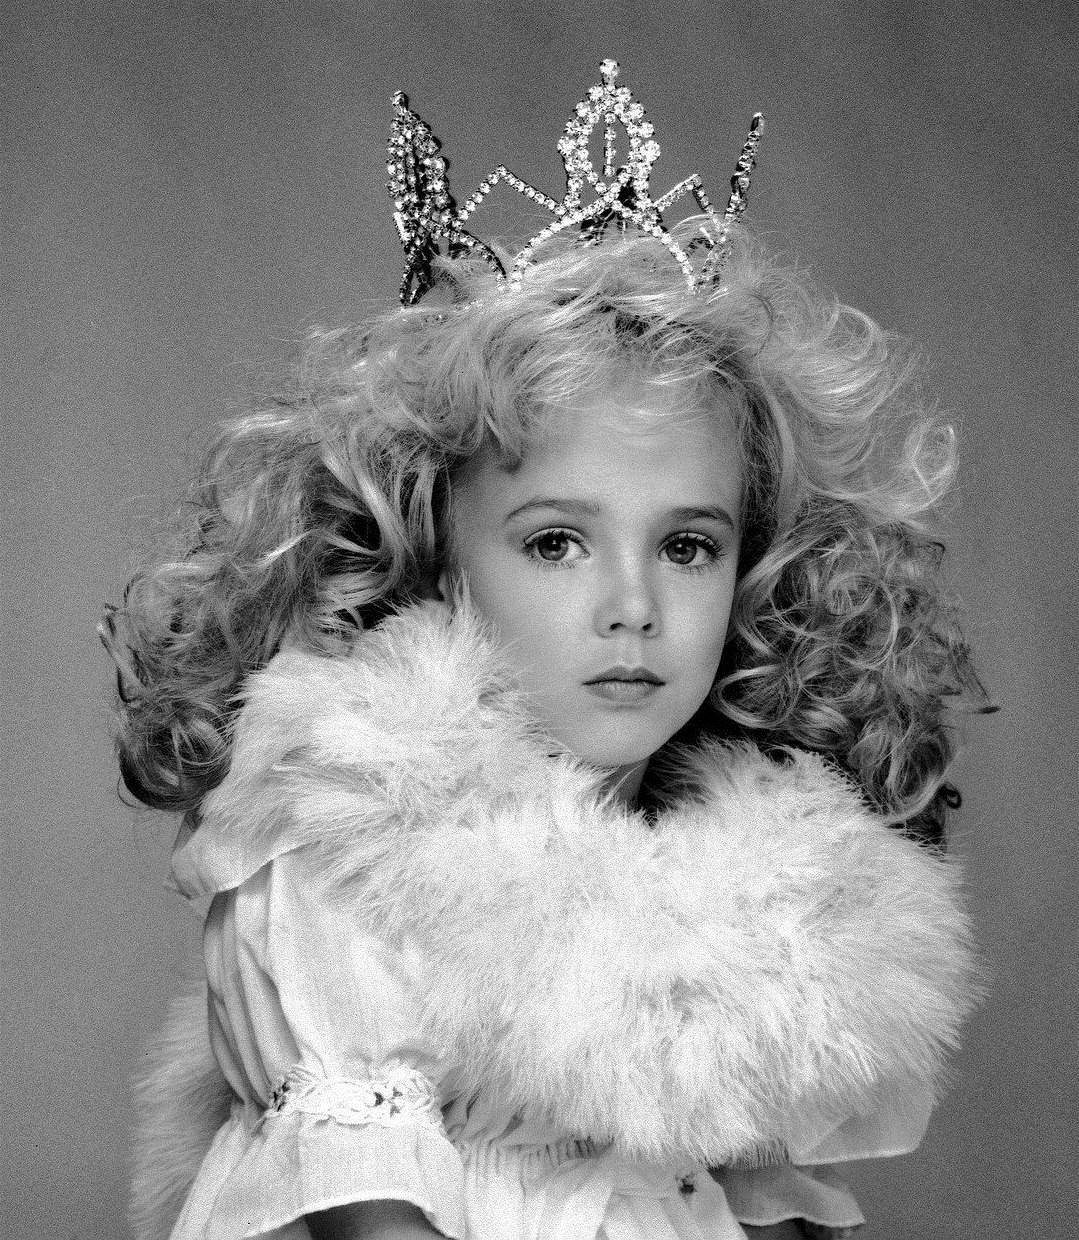 Sixyearold JonBenét Ramsey made national headlines when she was found murdered inside her Colorado home in December 1996 Her case is still unsolved